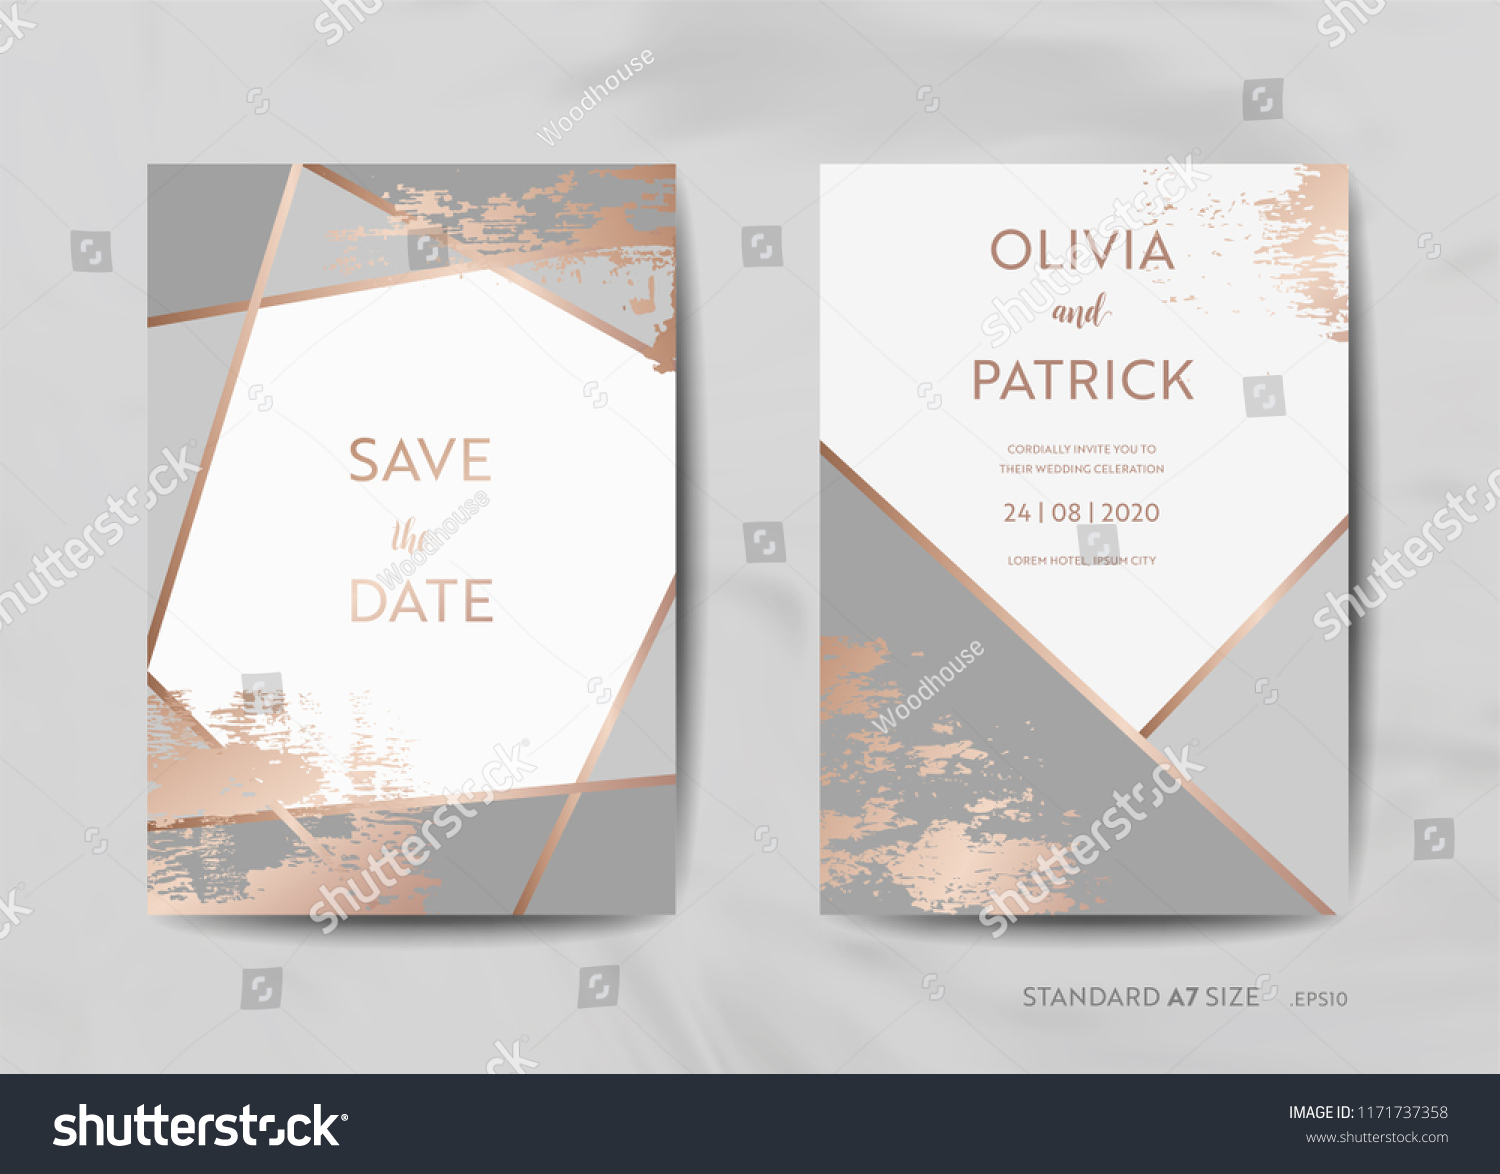 db75fe154ddc5 Wedding Invitation Cards Collection Save Date Stock Vector (Royalty ...